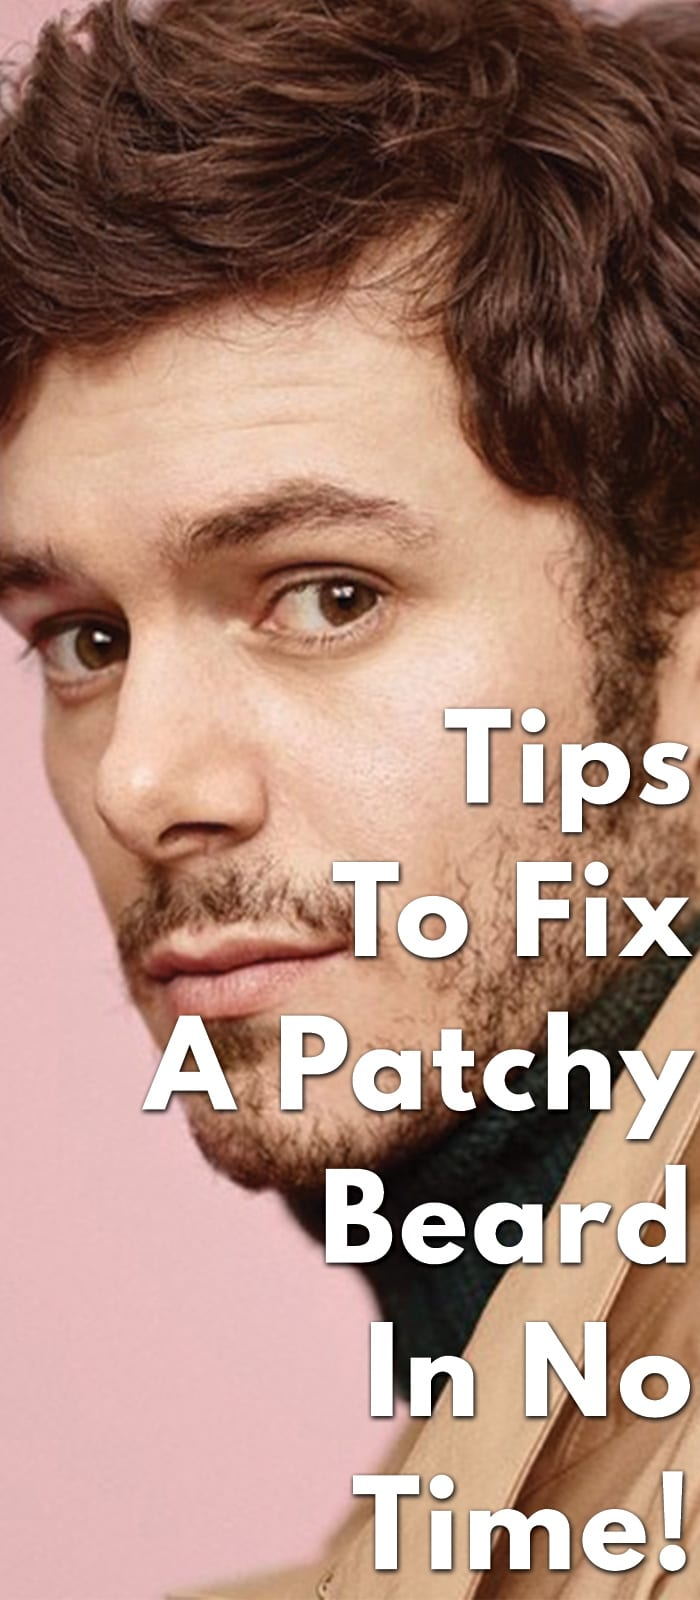 Tips-To-Fix-A-Patchy-Beard-In-No-Time!